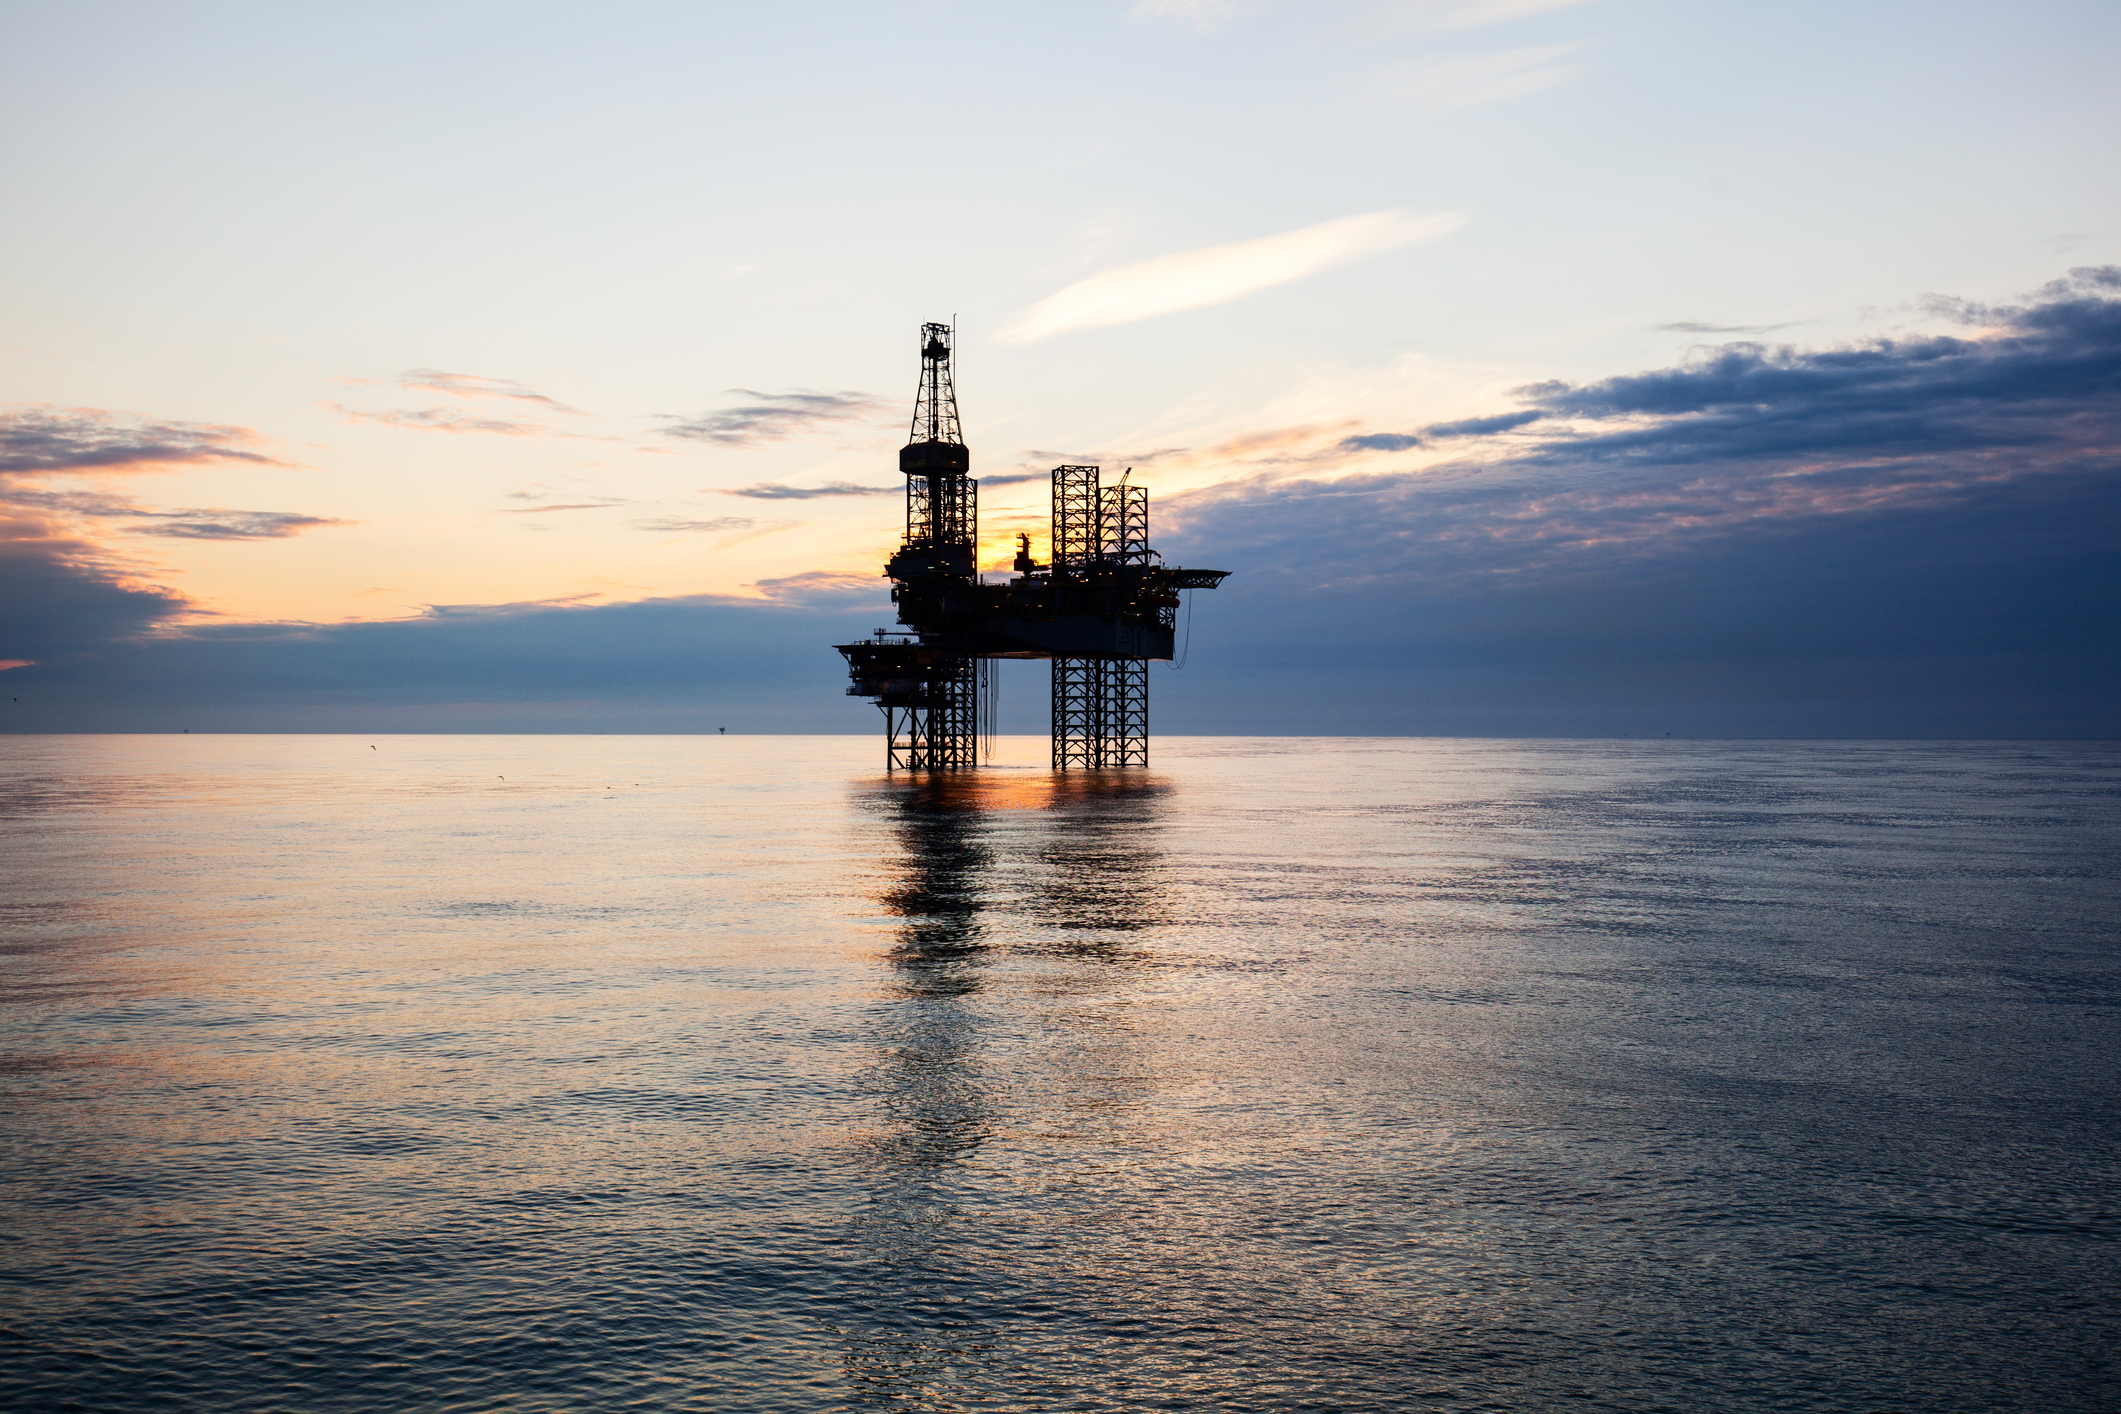 Experts say CO2 could breathe new life into redundant oil rigs